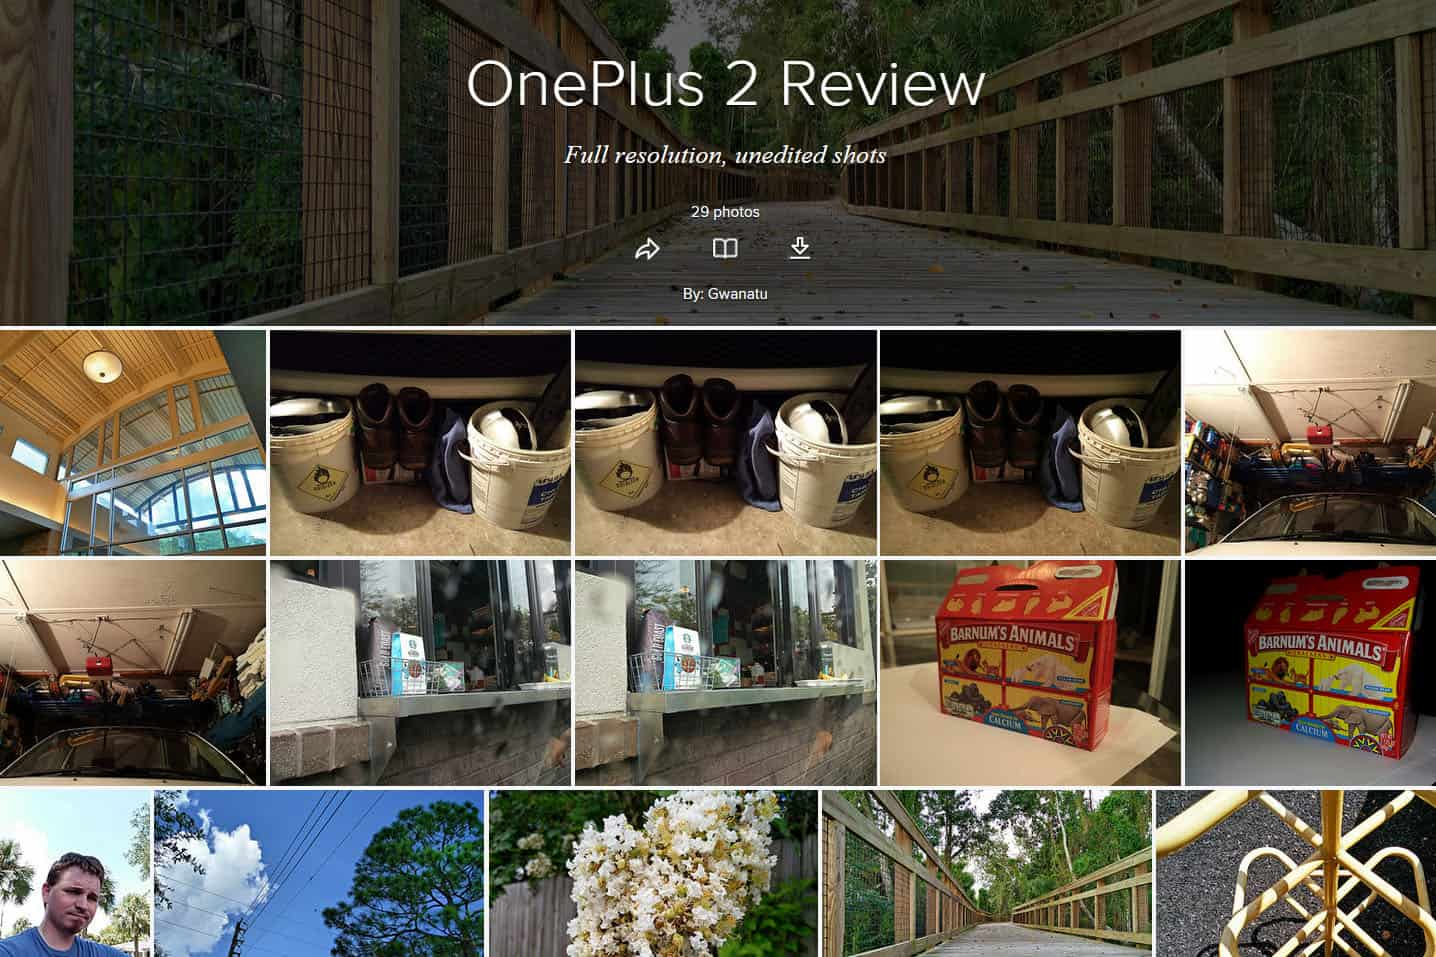 OnePlus-2-Review-AH-Camera-flickr